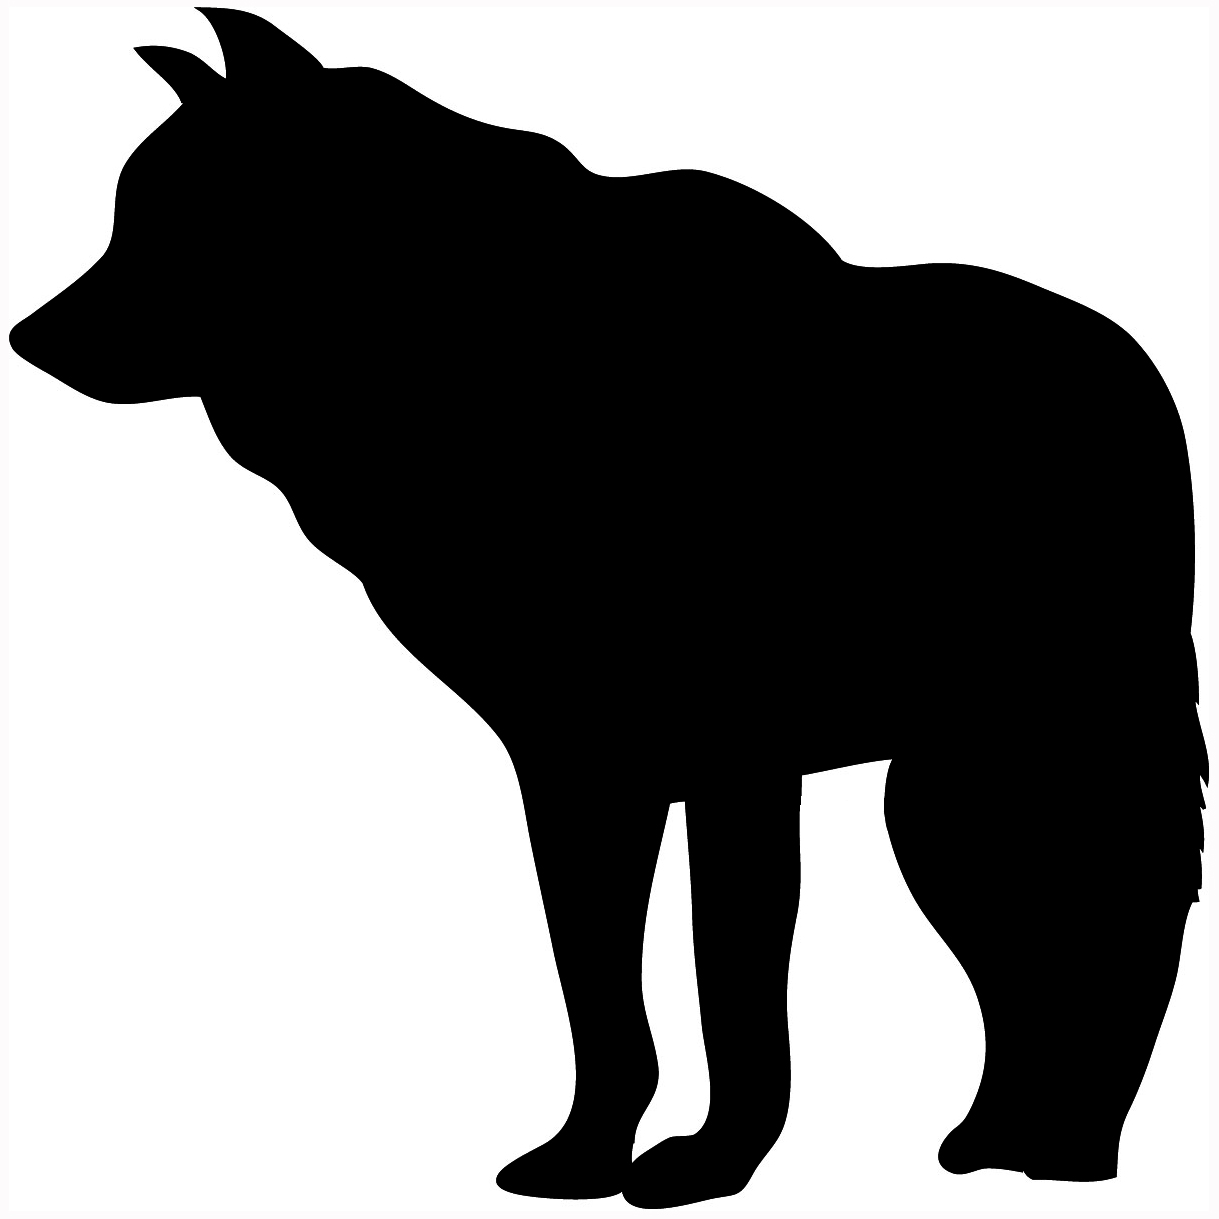 1219x1219 Free Animal Silhouettes Clipart Image